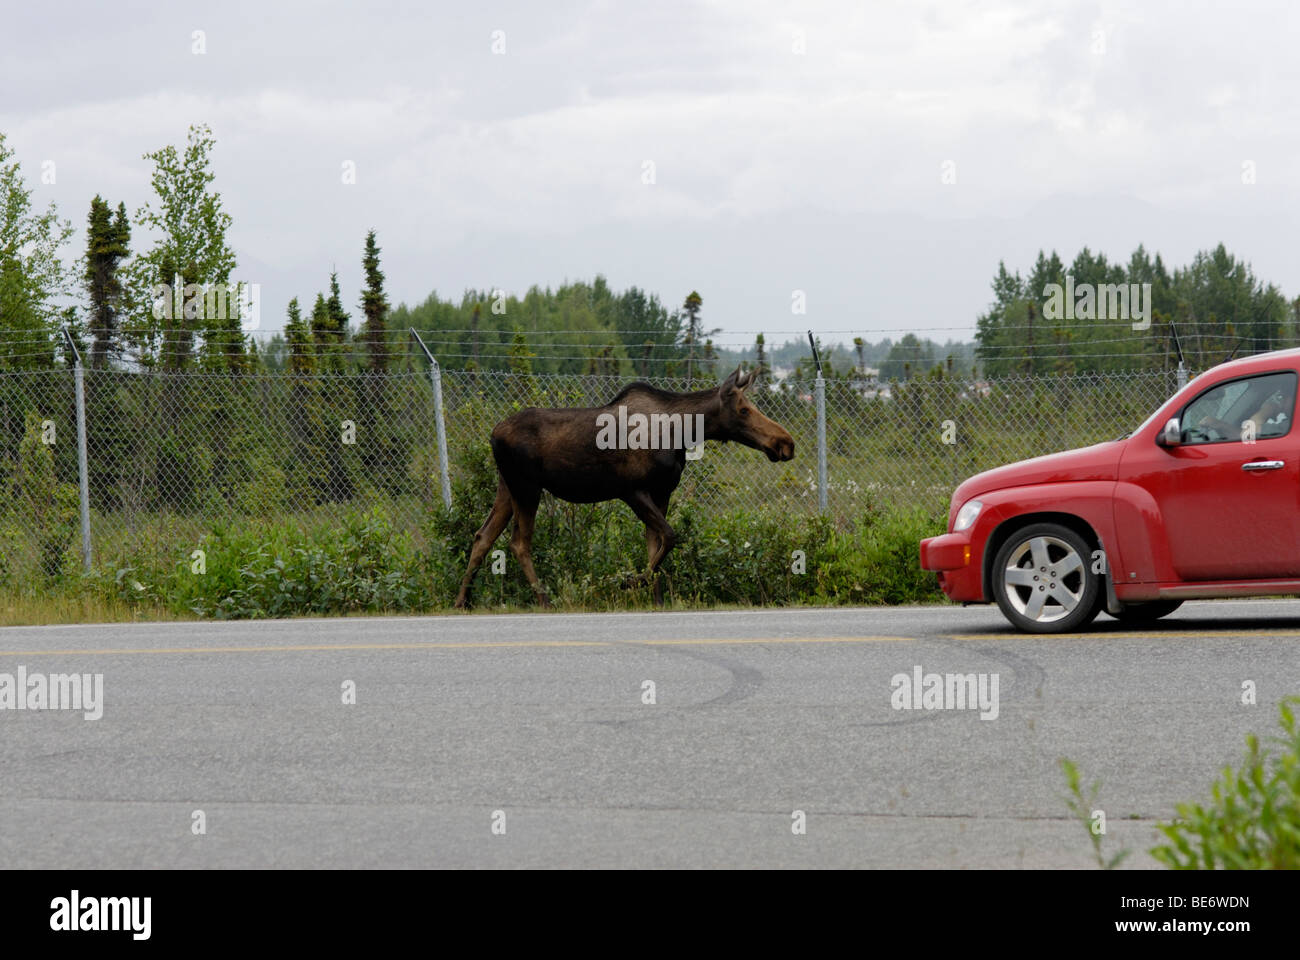 Moose en carretera, Anchorage, Alaska Imagen De Stock